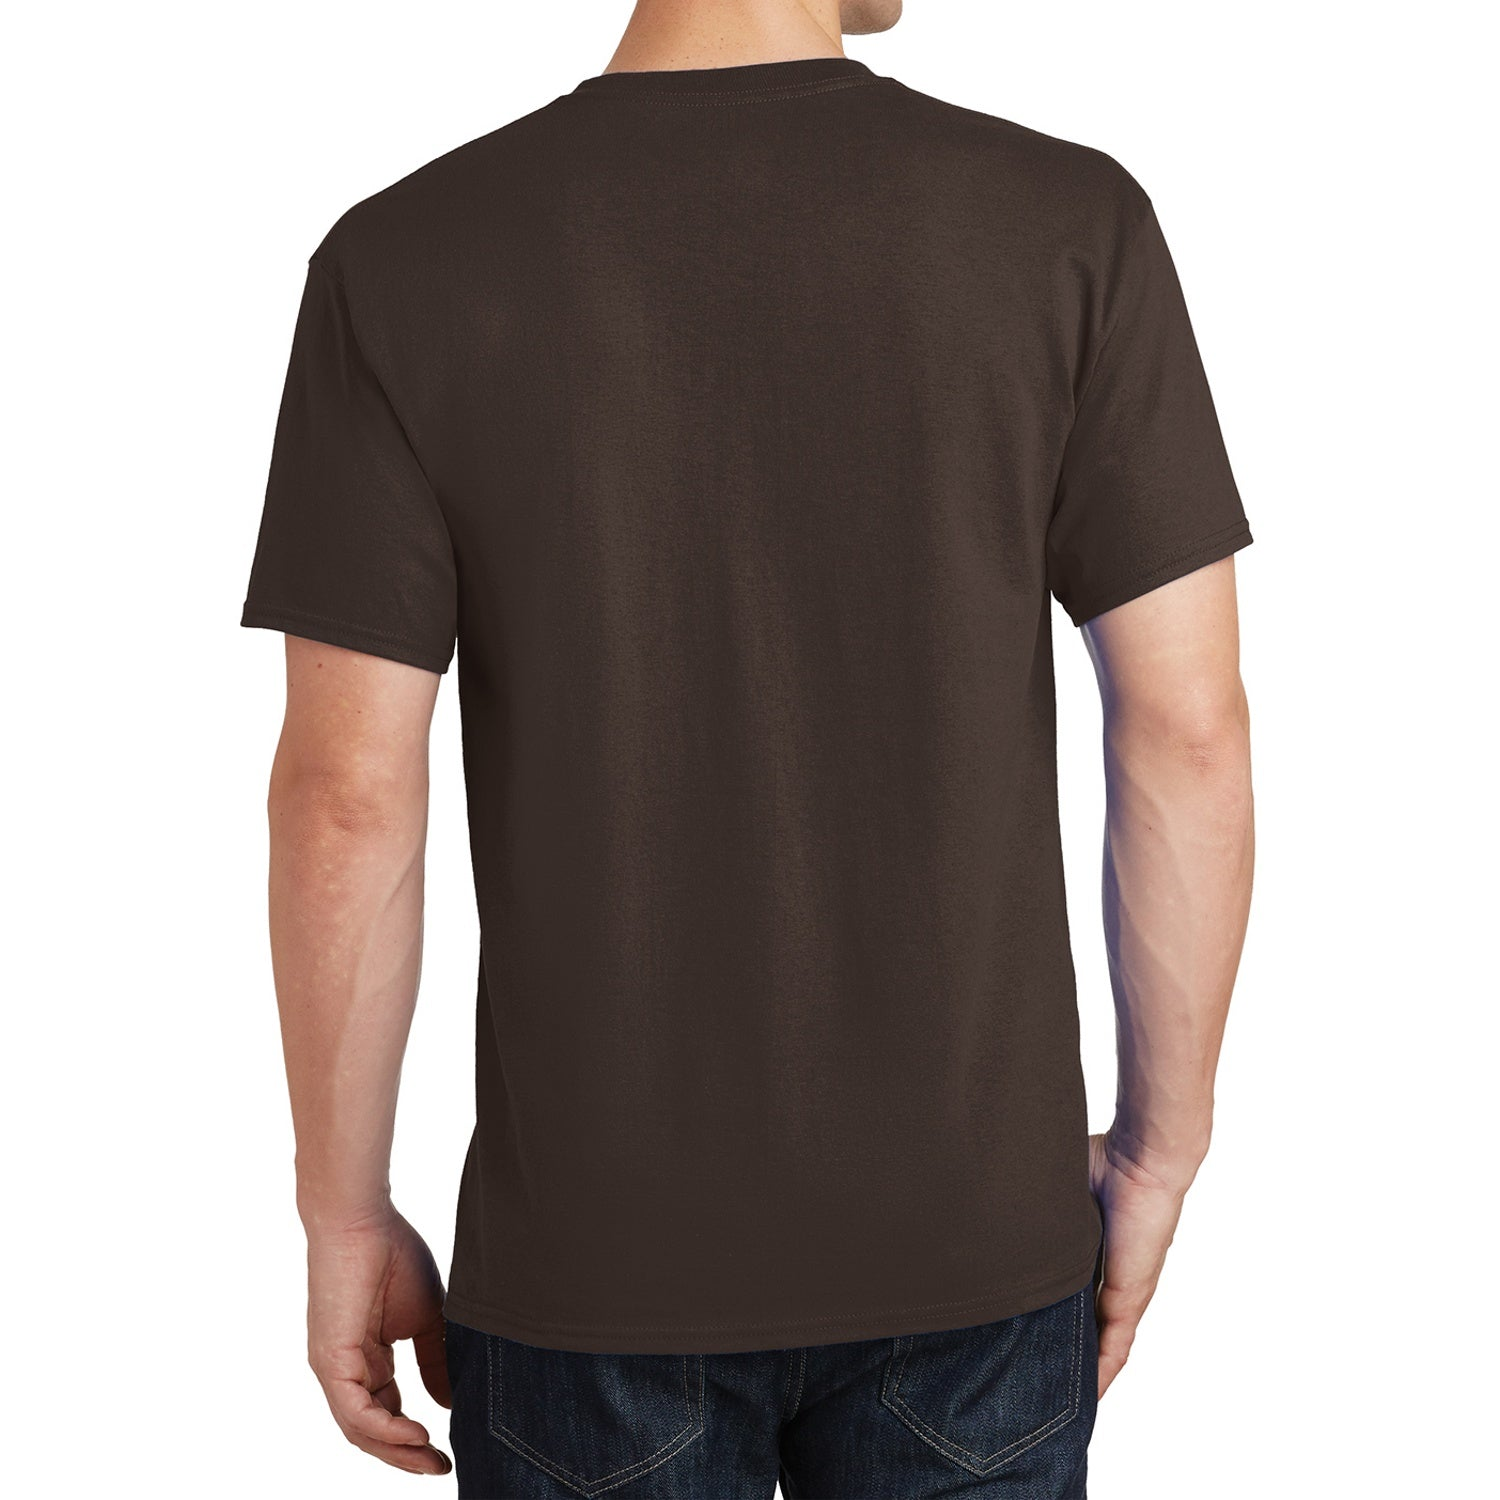 Core Cotton Tee - Dark Chocolate Brown